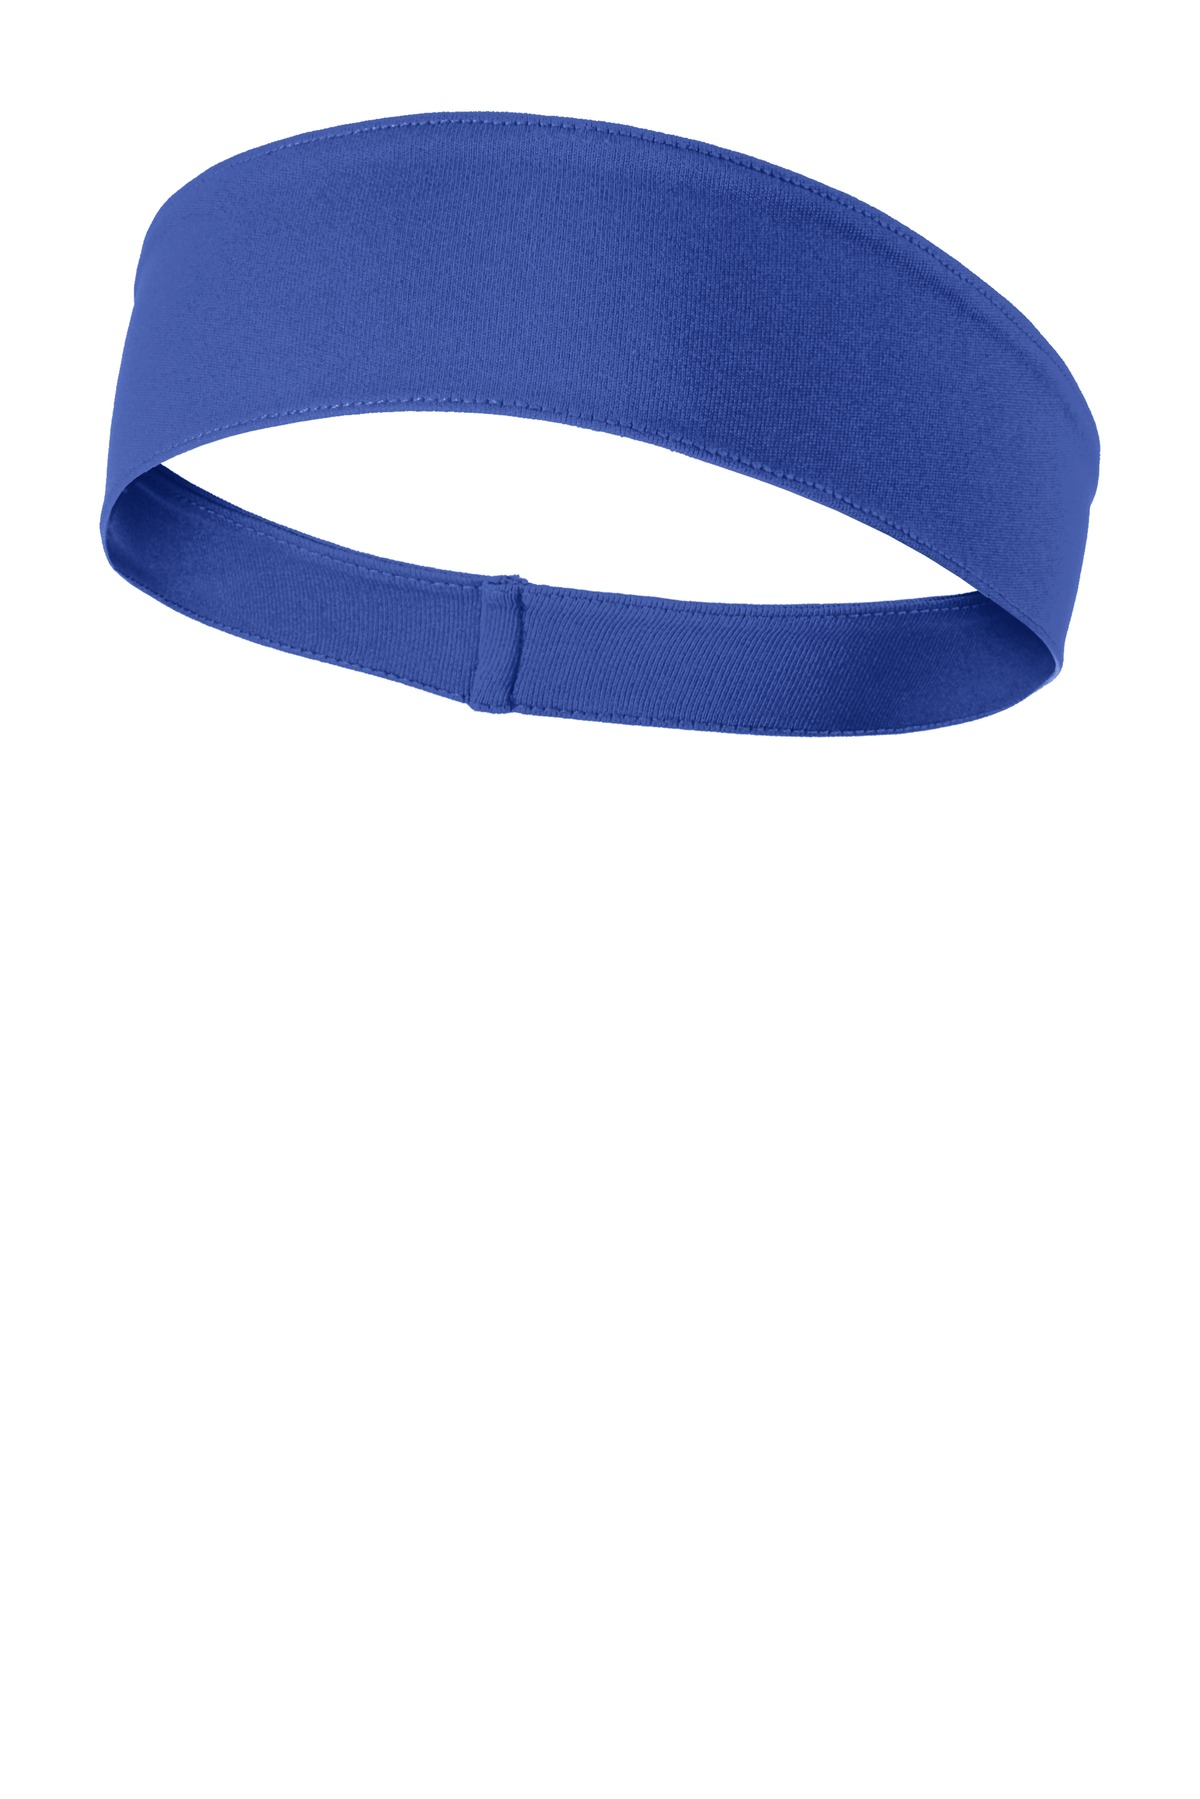 Sport-Tek ®  PosiCharge ®  Competitor ™  Headband. STA35 - True Royal